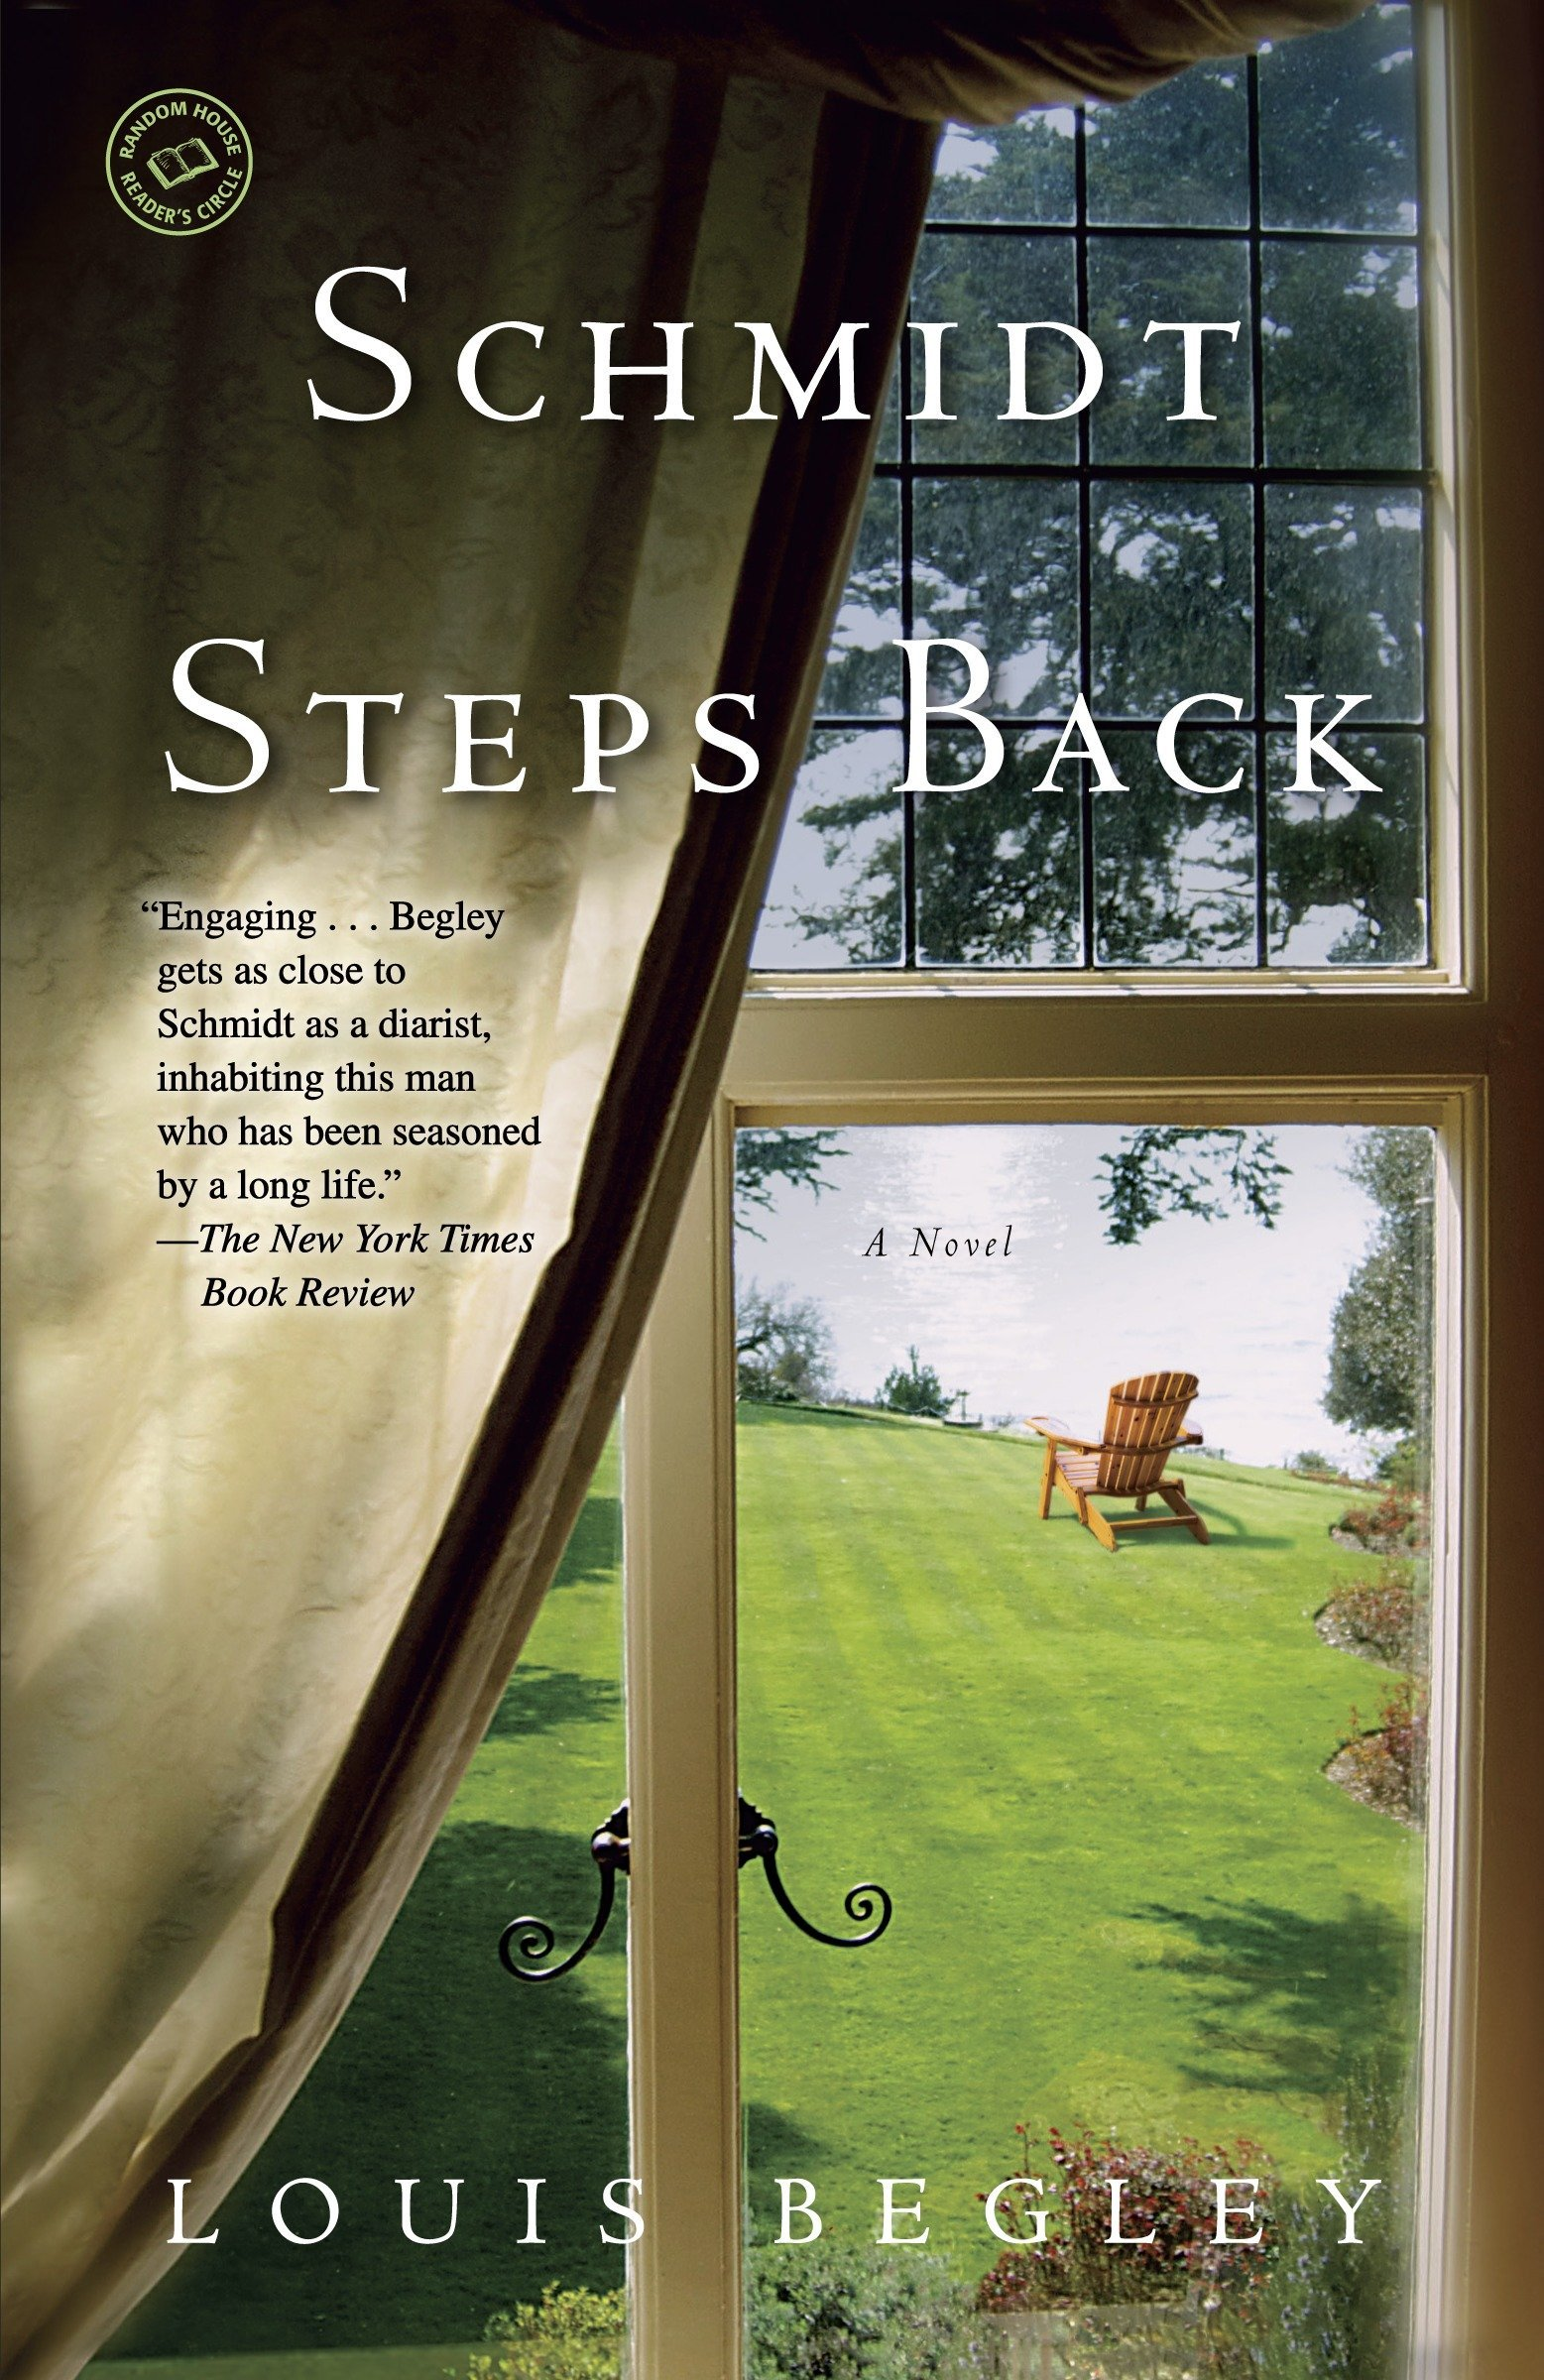 Amazon.com: Schmidt Steps Back: A Novel (9780345530530): Louis Begley: Books